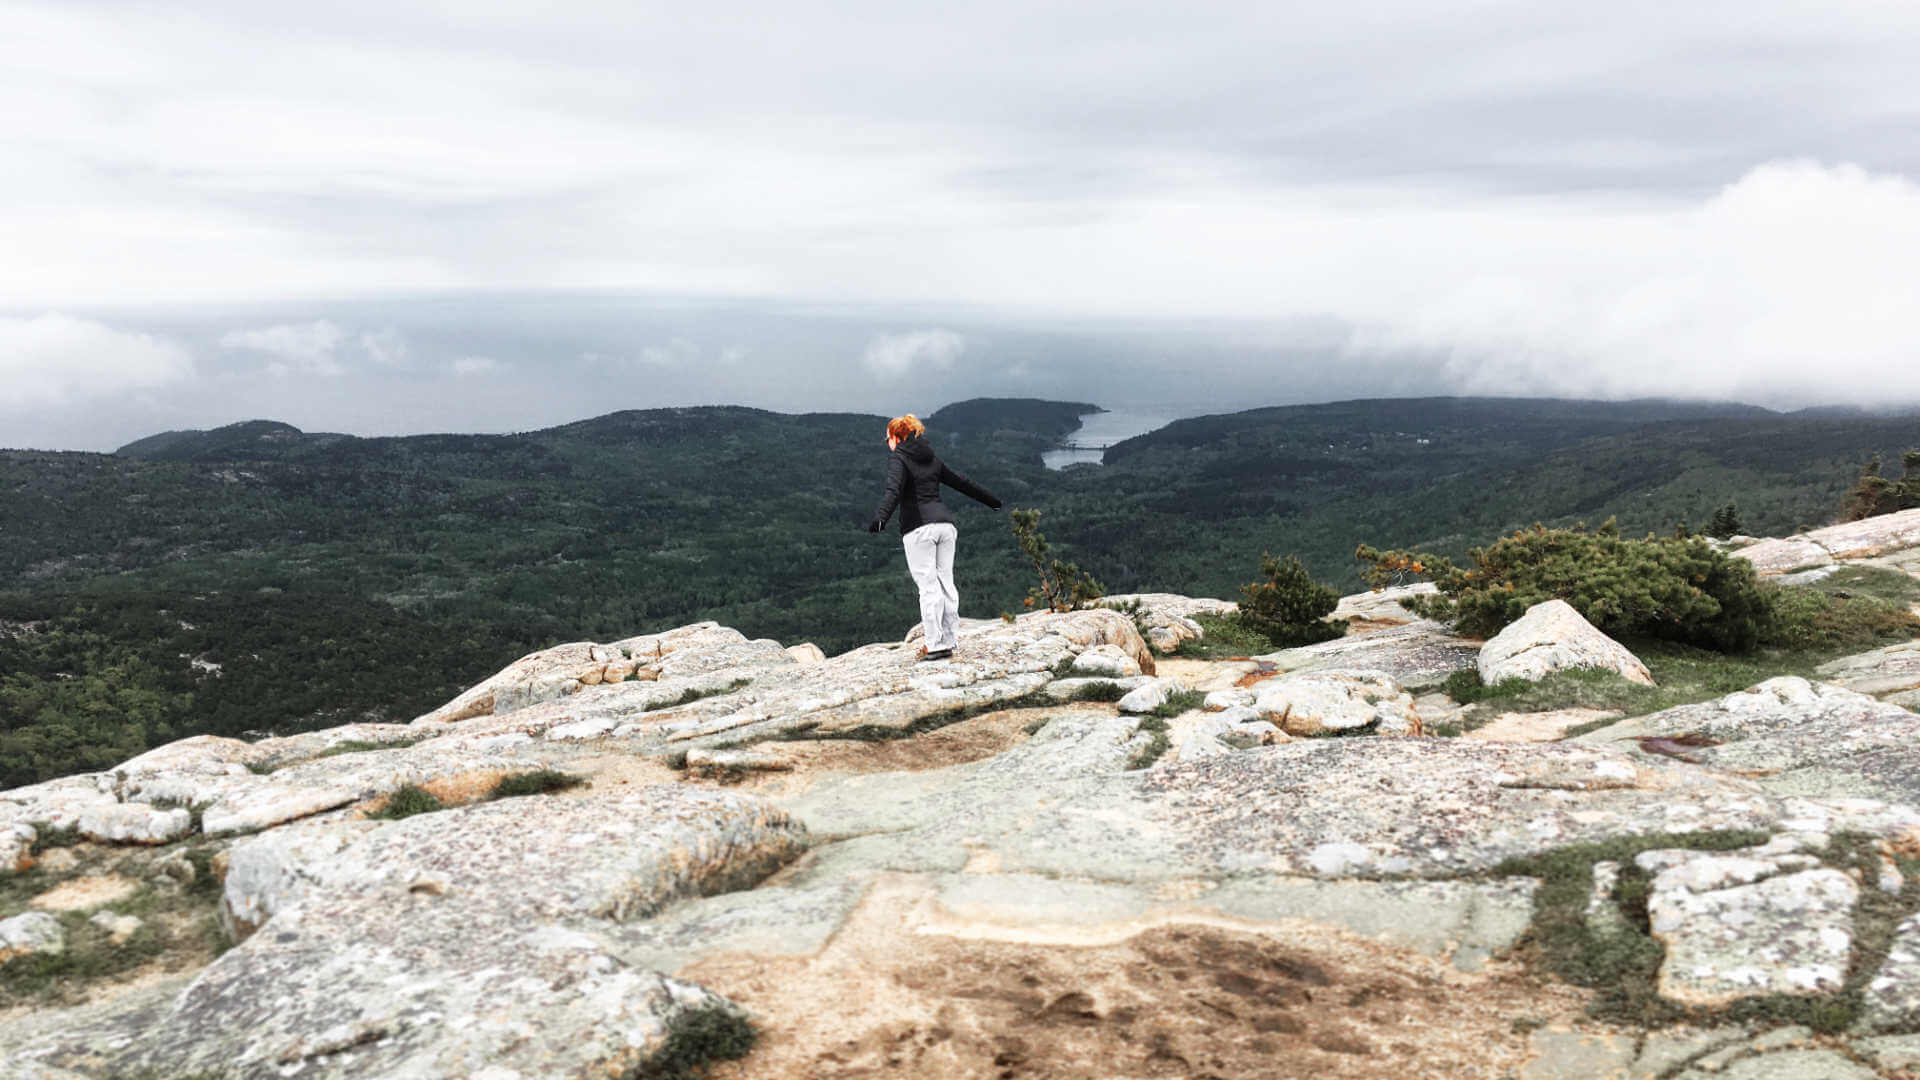 Jenni staring down over a peak in Acadia National Park, balancing near the edge - keeping things just right like with work-life balance.